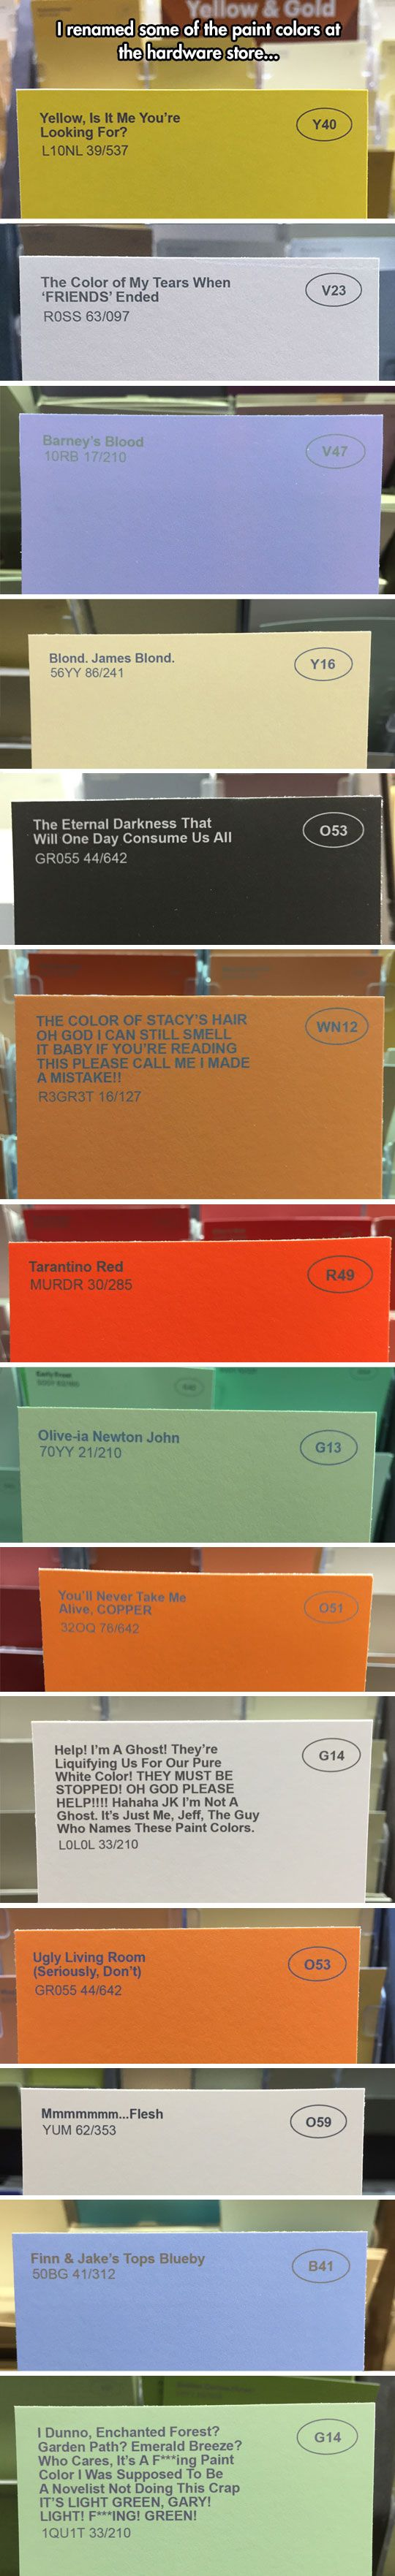 The Greatest Color Names In The World.